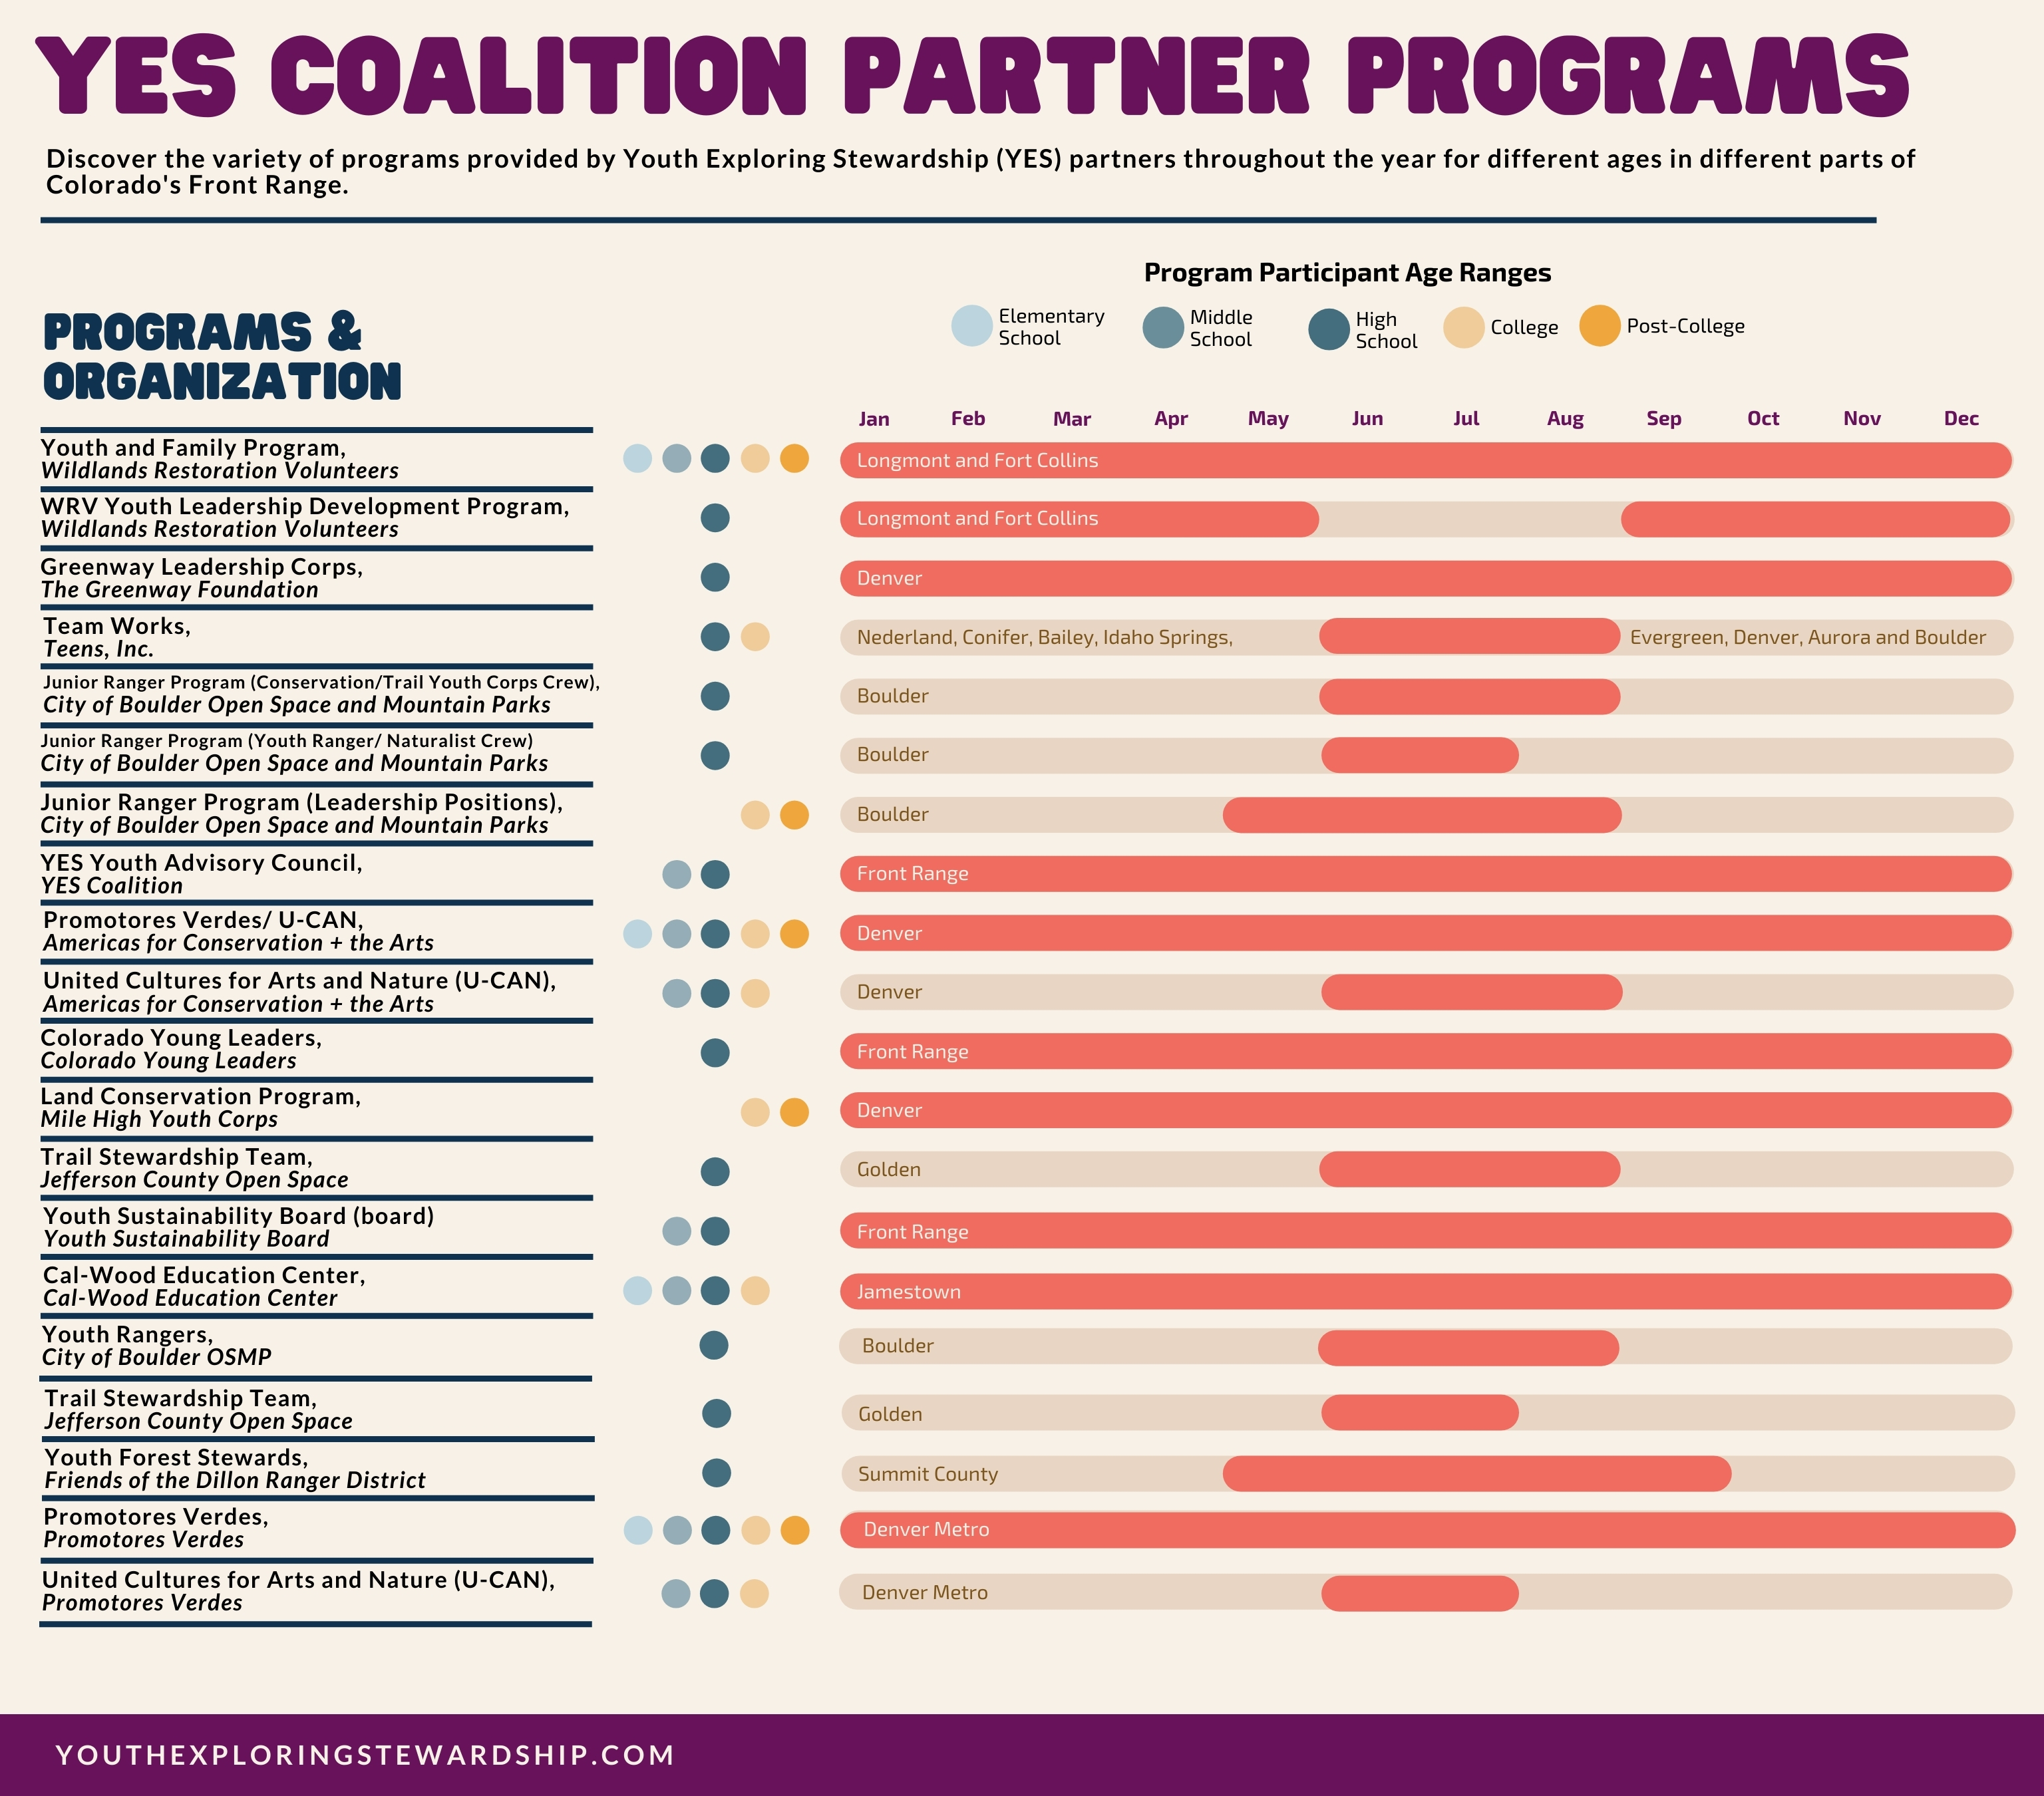 Overview of YES Coalition partner programs